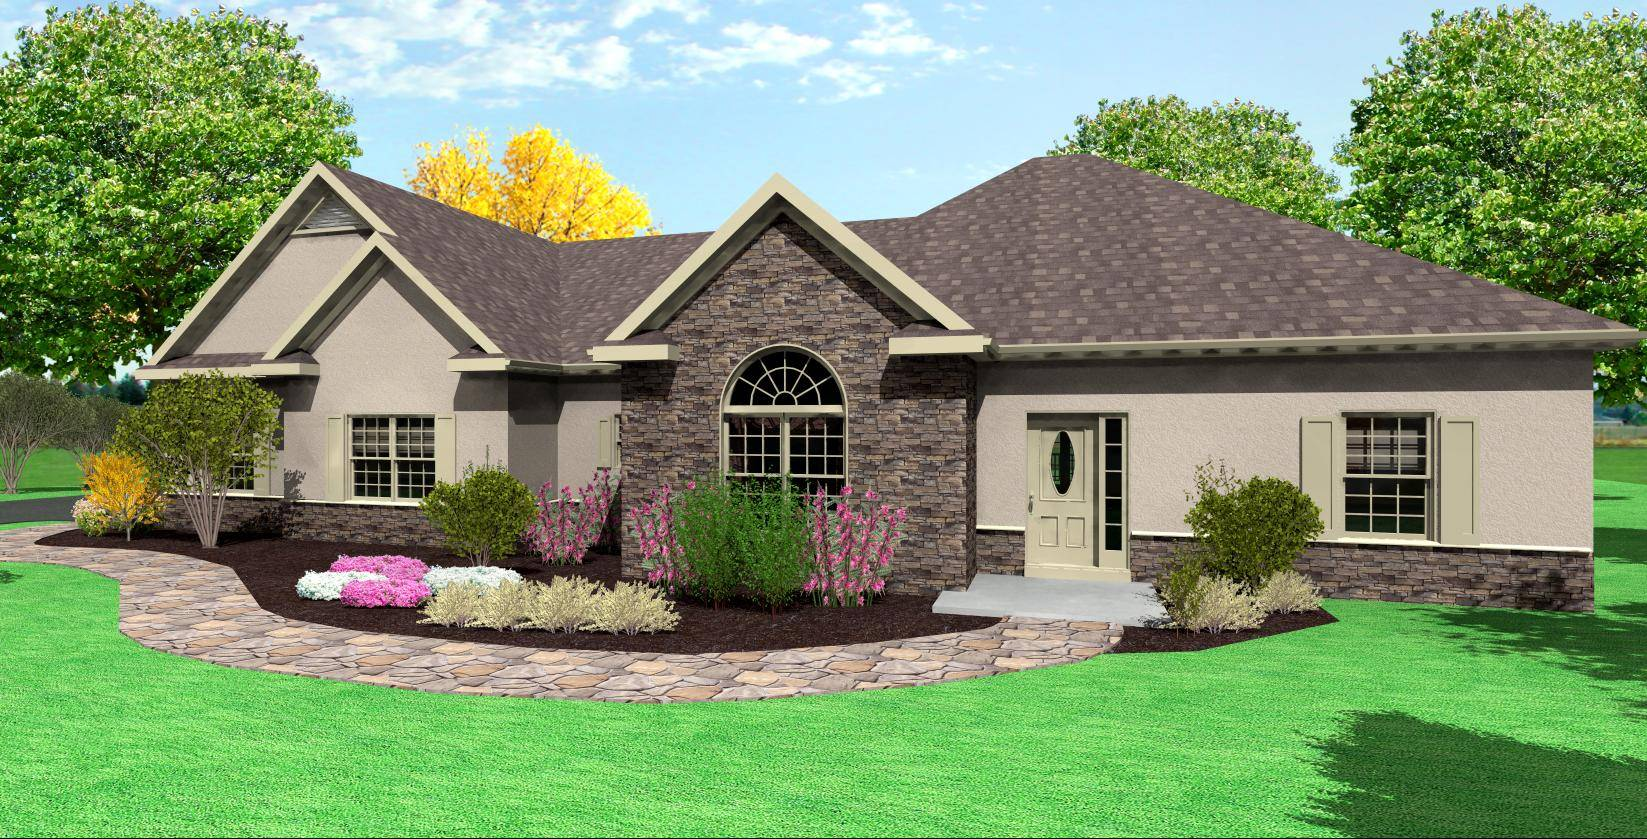 anch Home Plans Side Garage ottage House - House Plans #20093 - ^